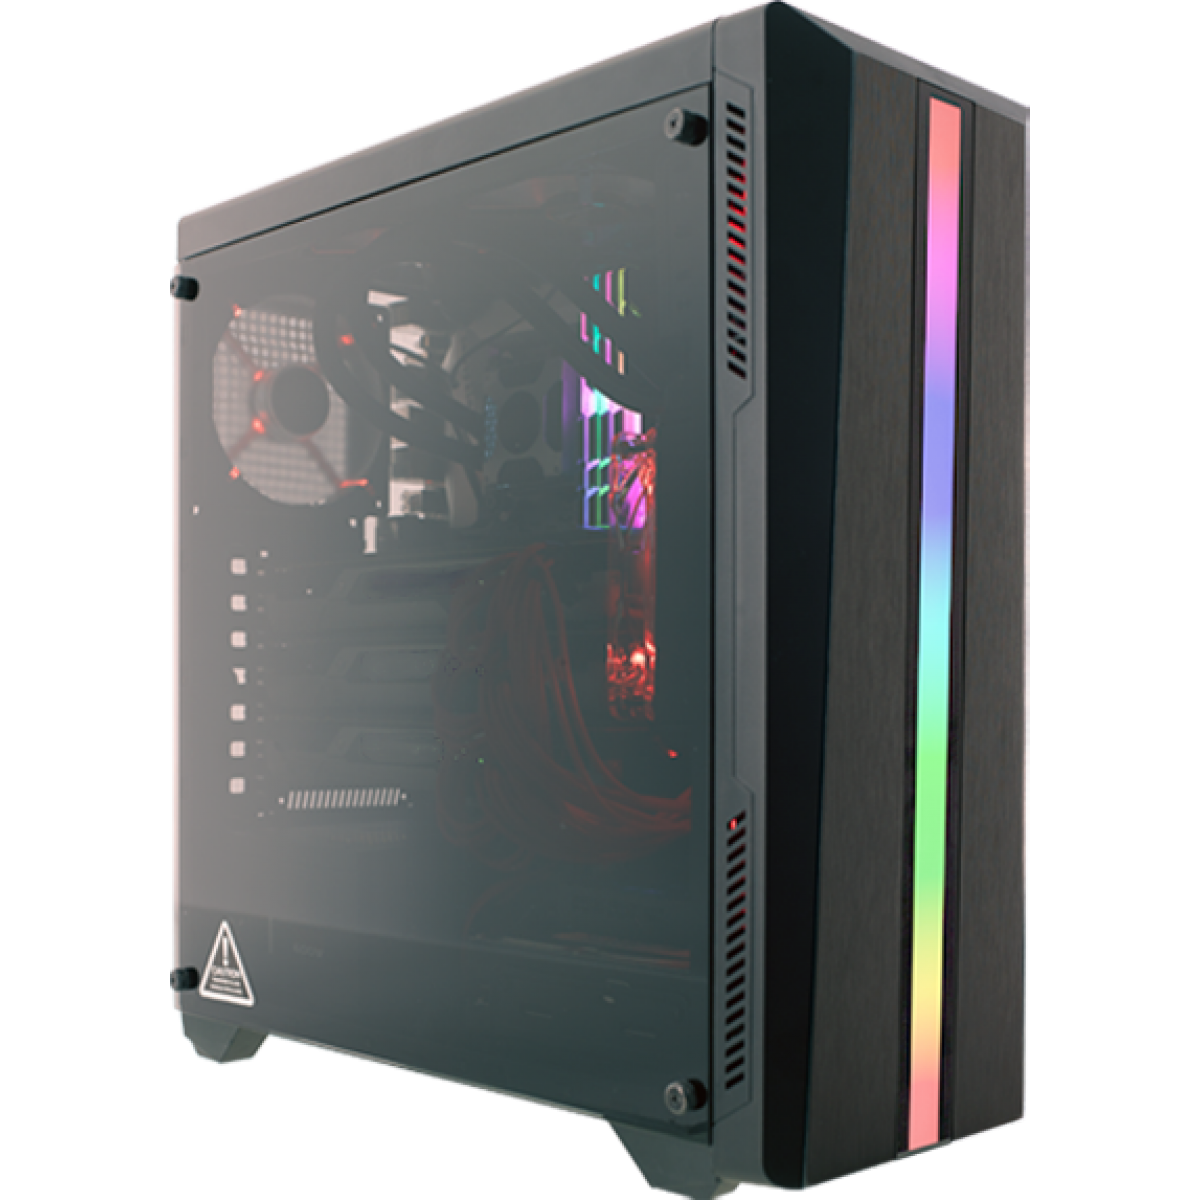 Pc Gamer Super Streamer Lvl-4 Amd Ryzen 5 2600X 3.6GHZ / Geforce Rtx 2060 6gb / 8gb Ddr4 / Hd 1tb / 600W